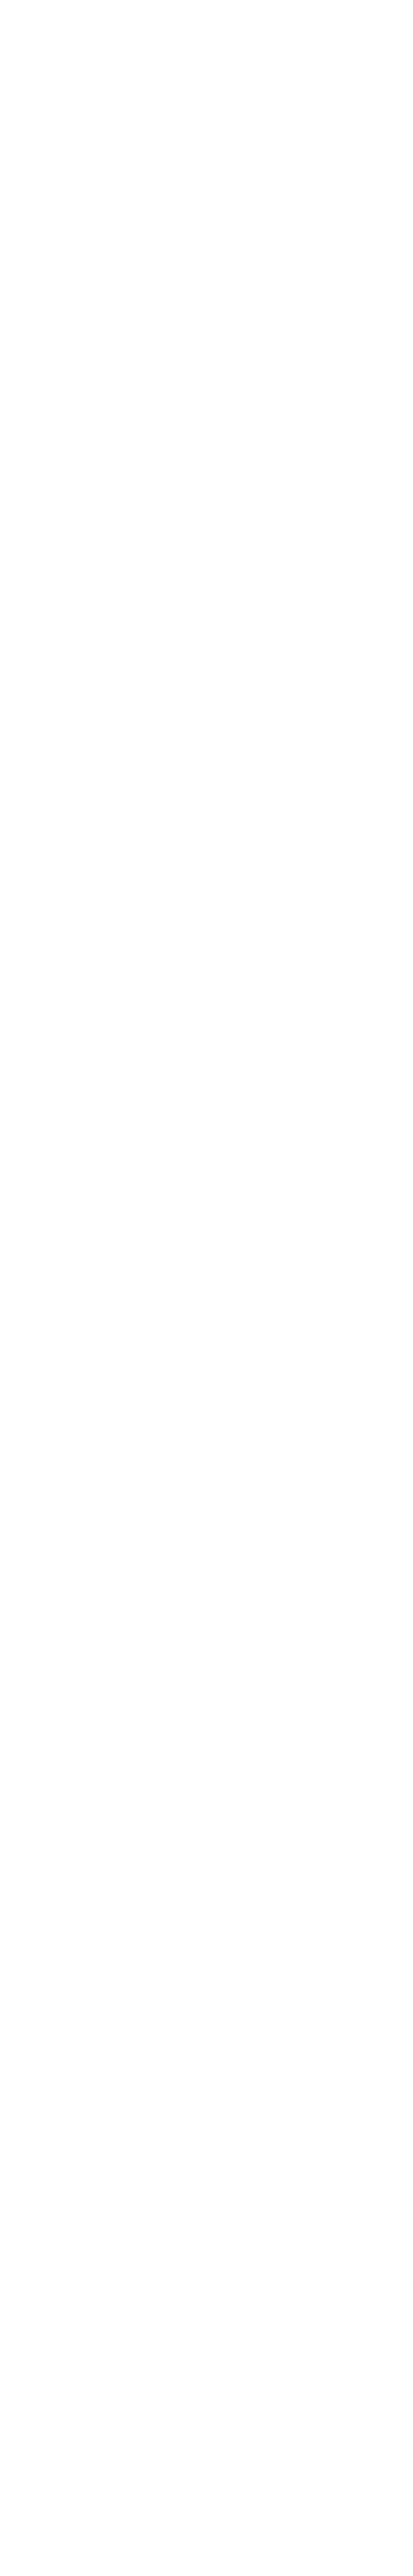 exclamation point white Clipart illustration in PNG, SVG